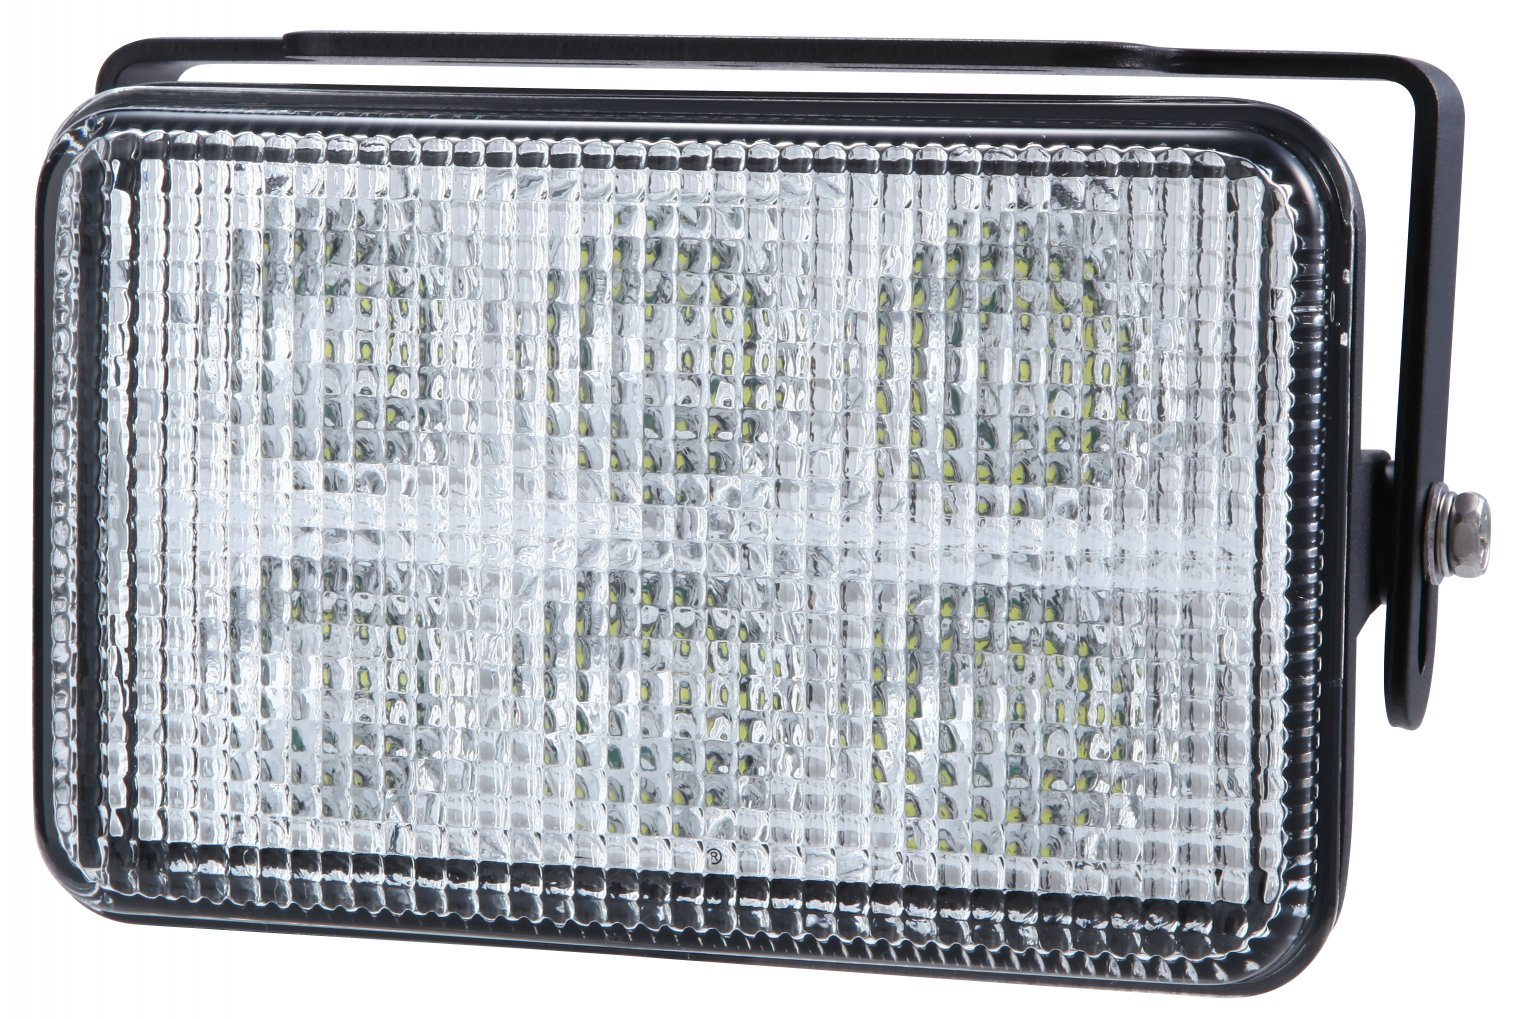 Agricultural / Tractor Work Lamp for Lighting Series made by Sirius Light Technology Co., LTD 南勝企業股份有限公司 - MatchSupplier.com